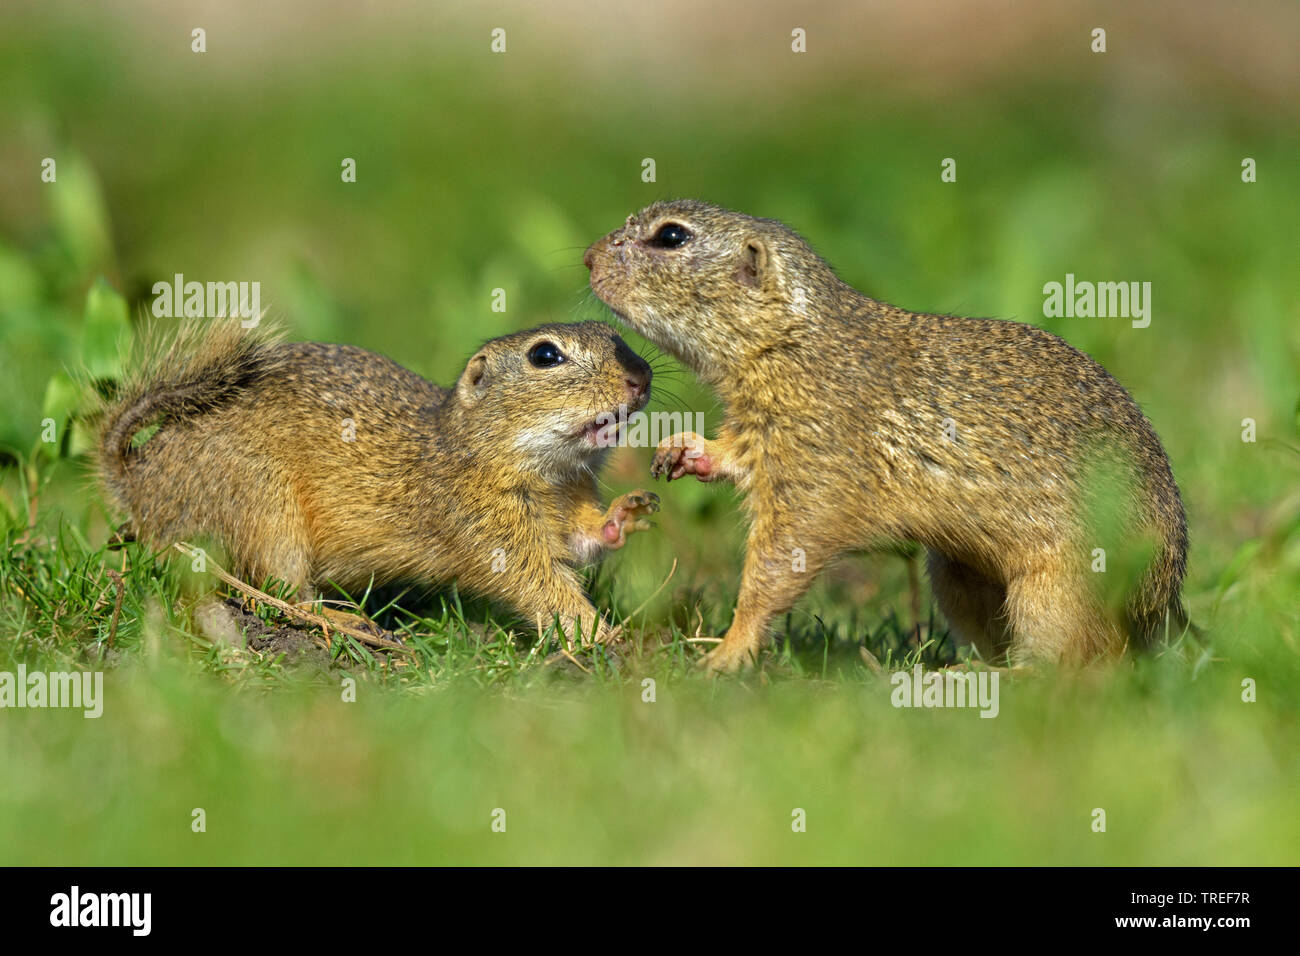 European ground squirrel, European suslik, European souslik (Citellus citellus, Spermophilus citellus), male sniffing at a female in a meadow, side view, Austria, Burgenland, Neusiedler See National Park Stock Photo